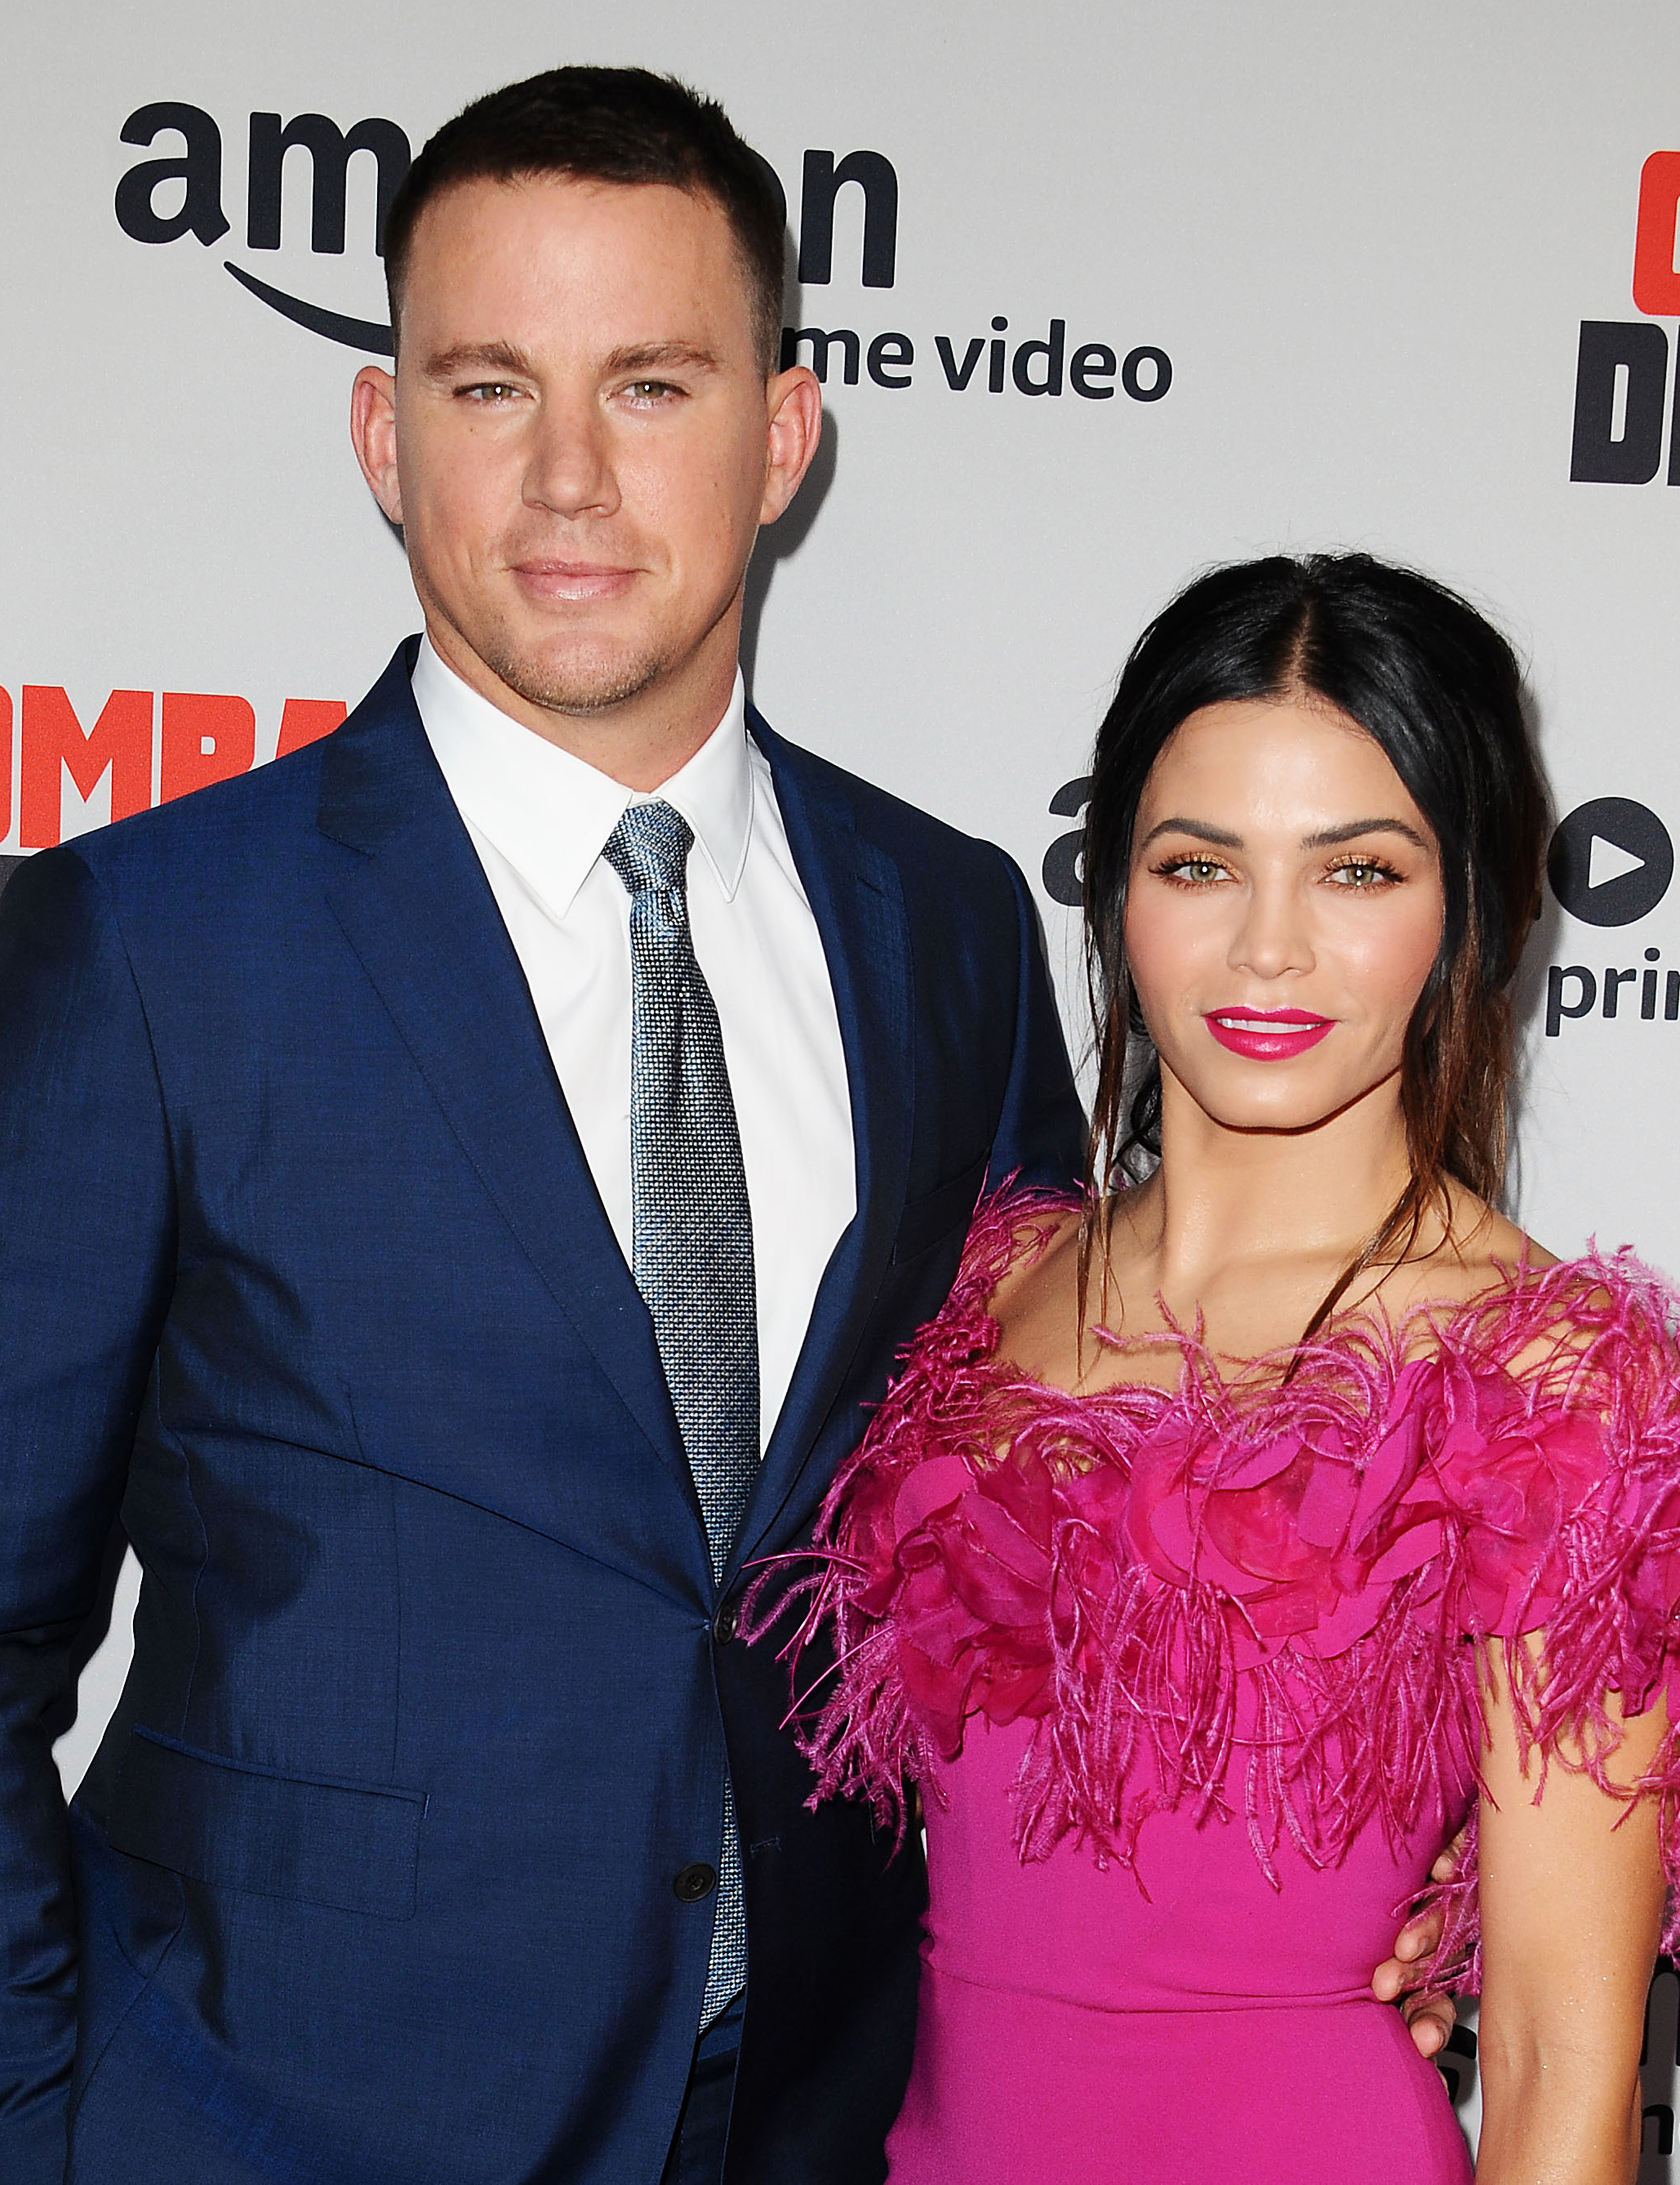 Jenna Dewan Posted a Cryptic Message After Her Last Instagram with Channing Tatum